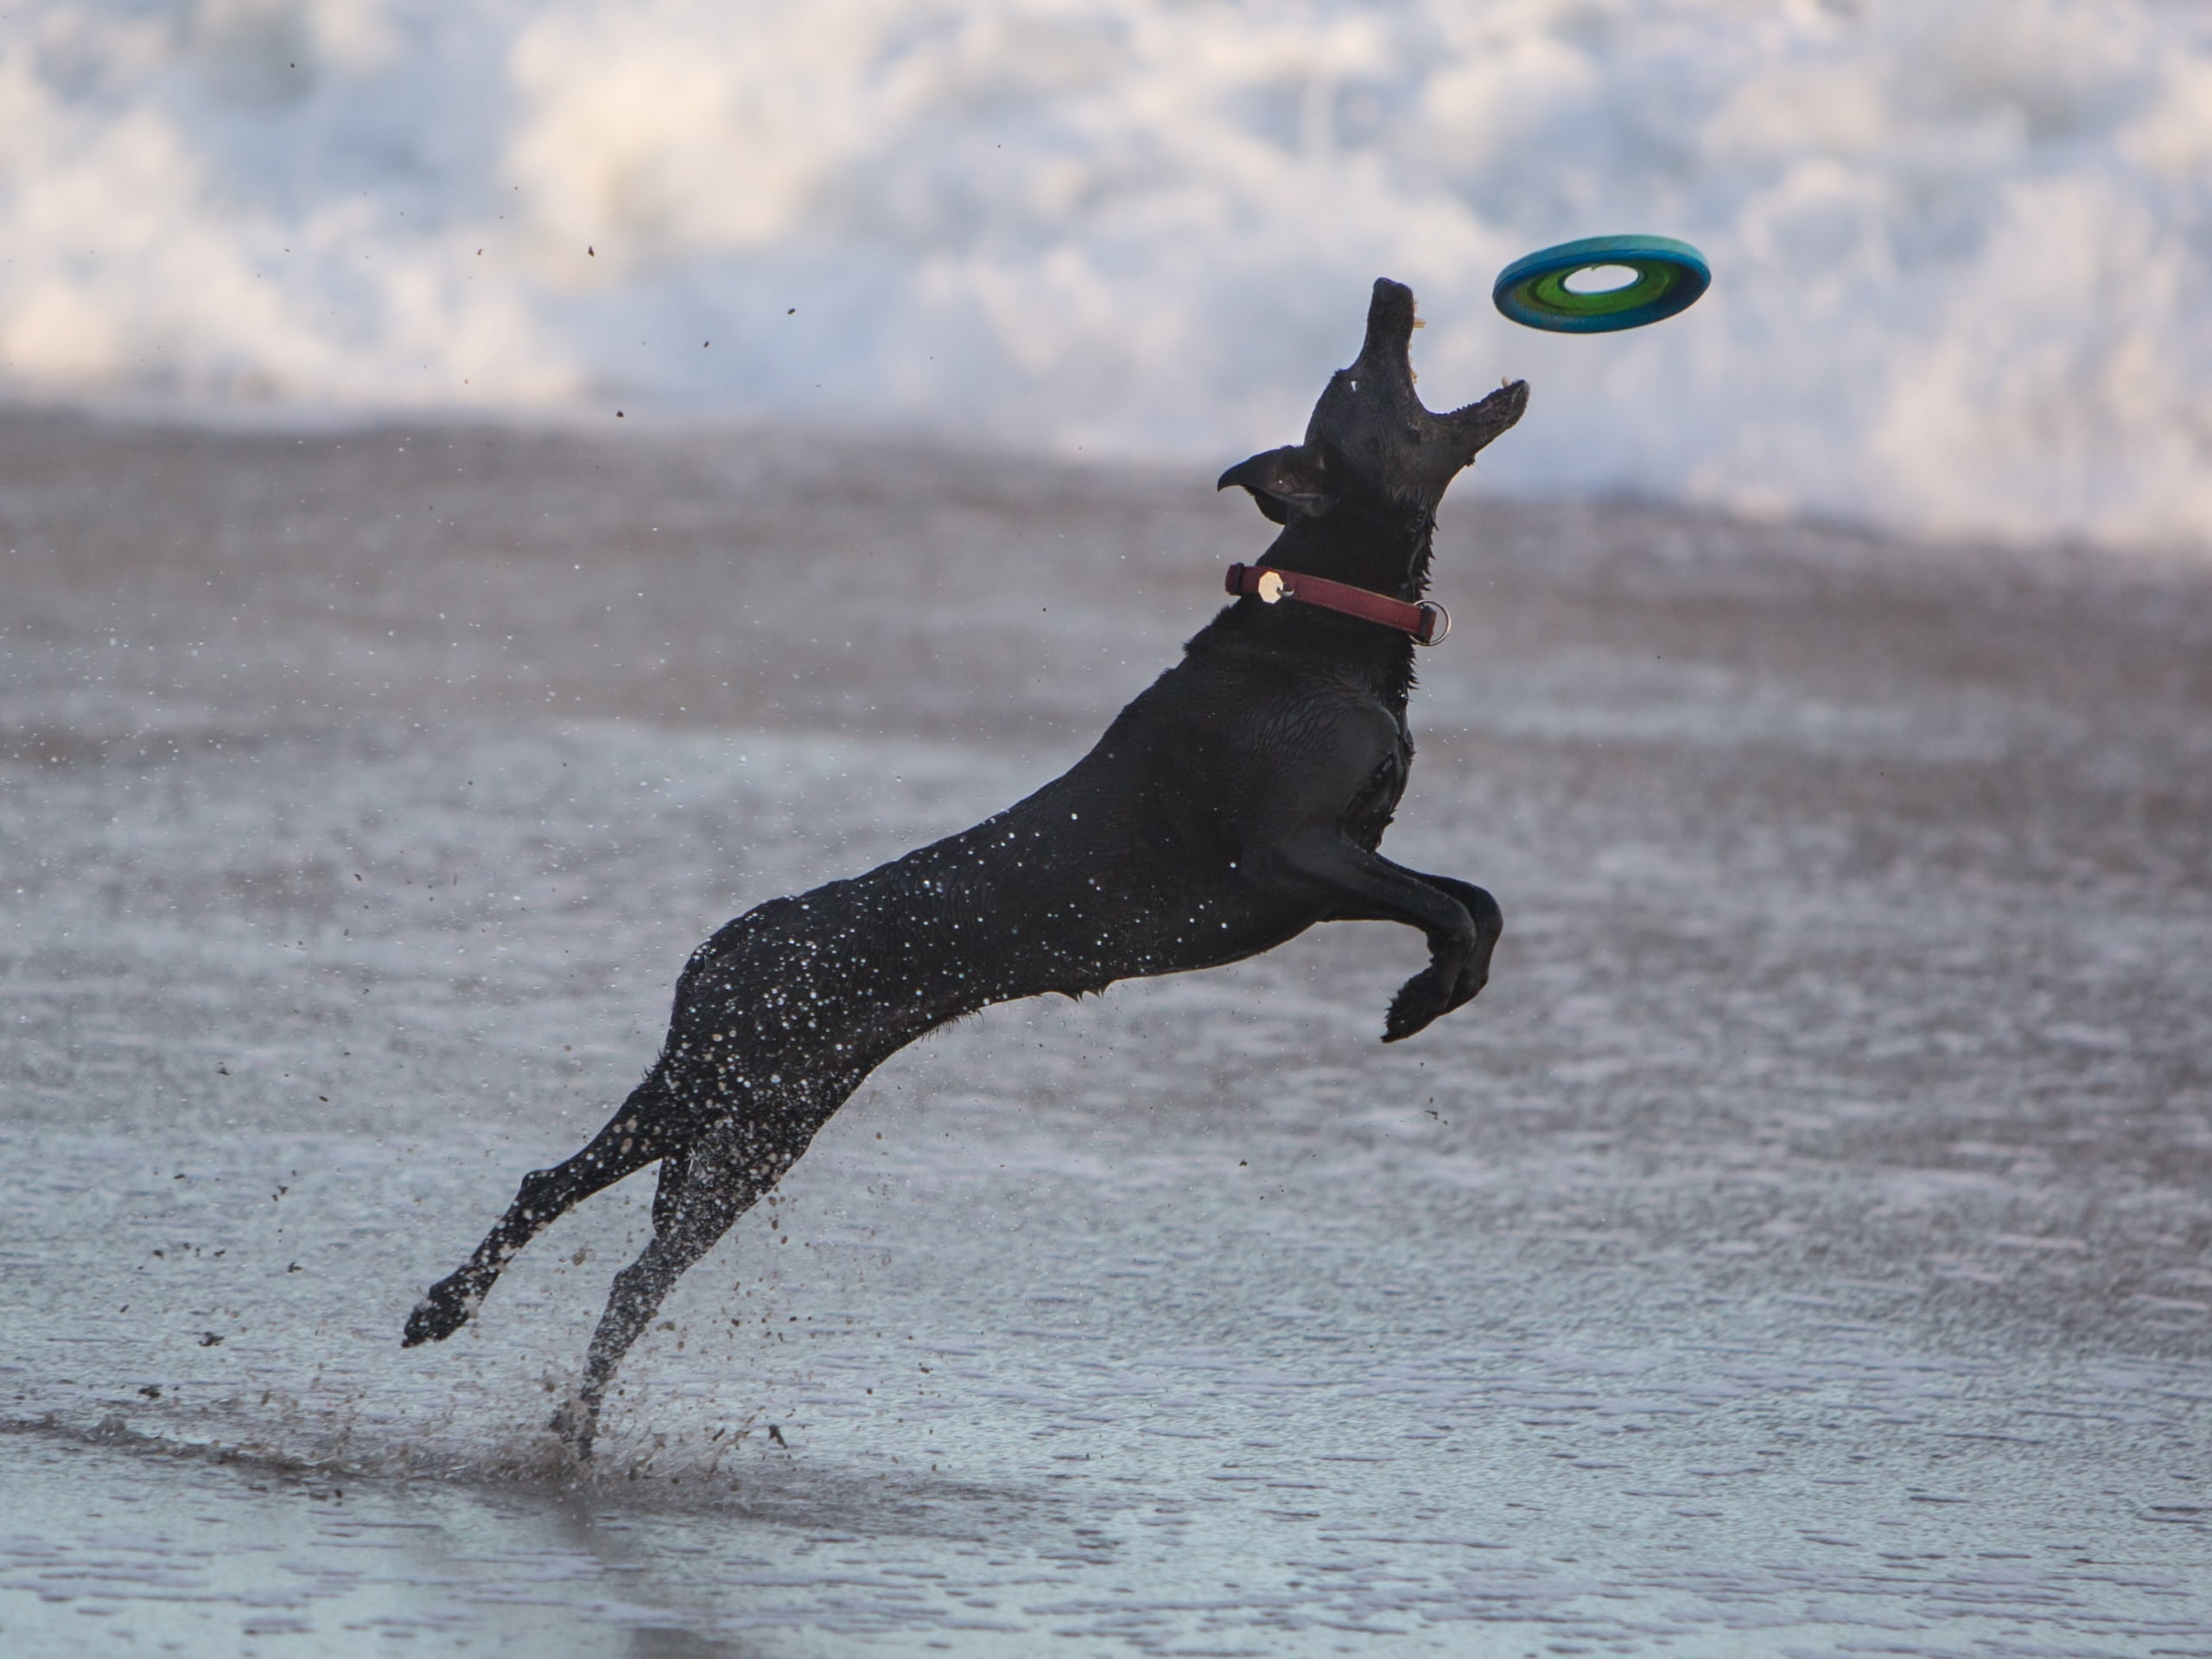 A dog leaping for a frisbee on the beach wearing a collar and ID tag.